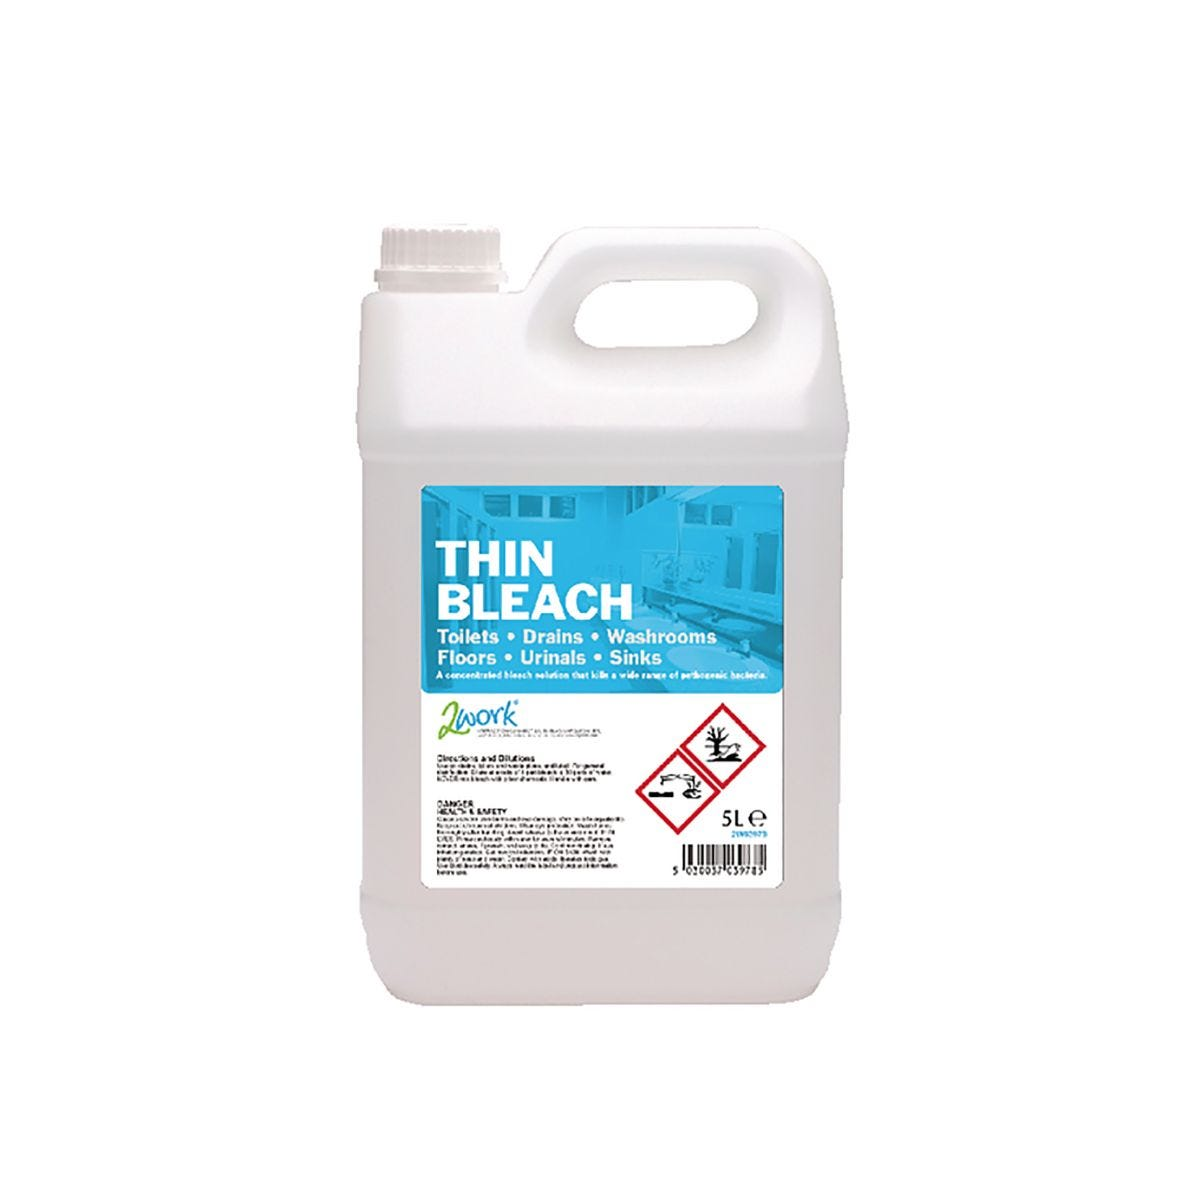 Image of 2Work Thin Bleach 5 Litre